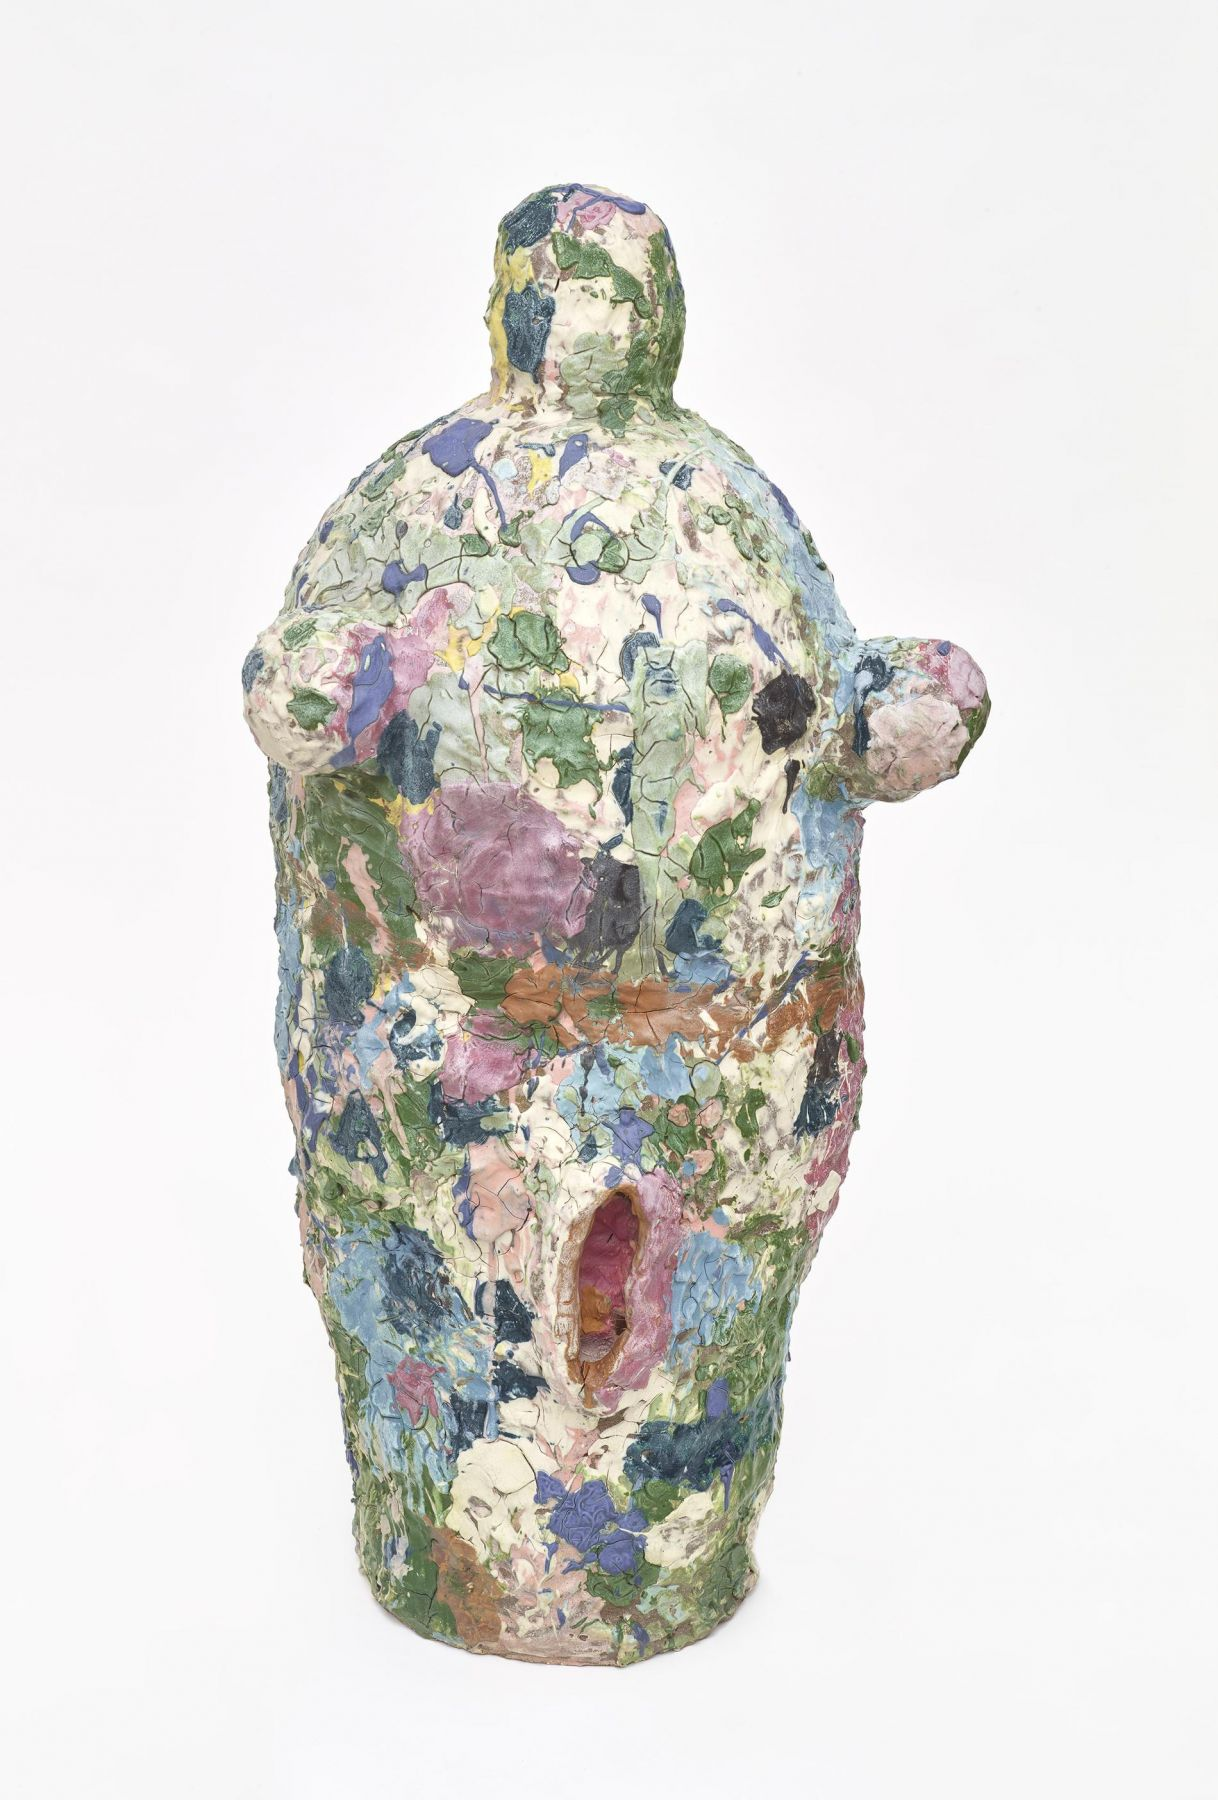 , Rainbow Femme, c.1987, Stoneware and colored slips, 44 1/2 x 21 1/4 x 17 1/2 in.